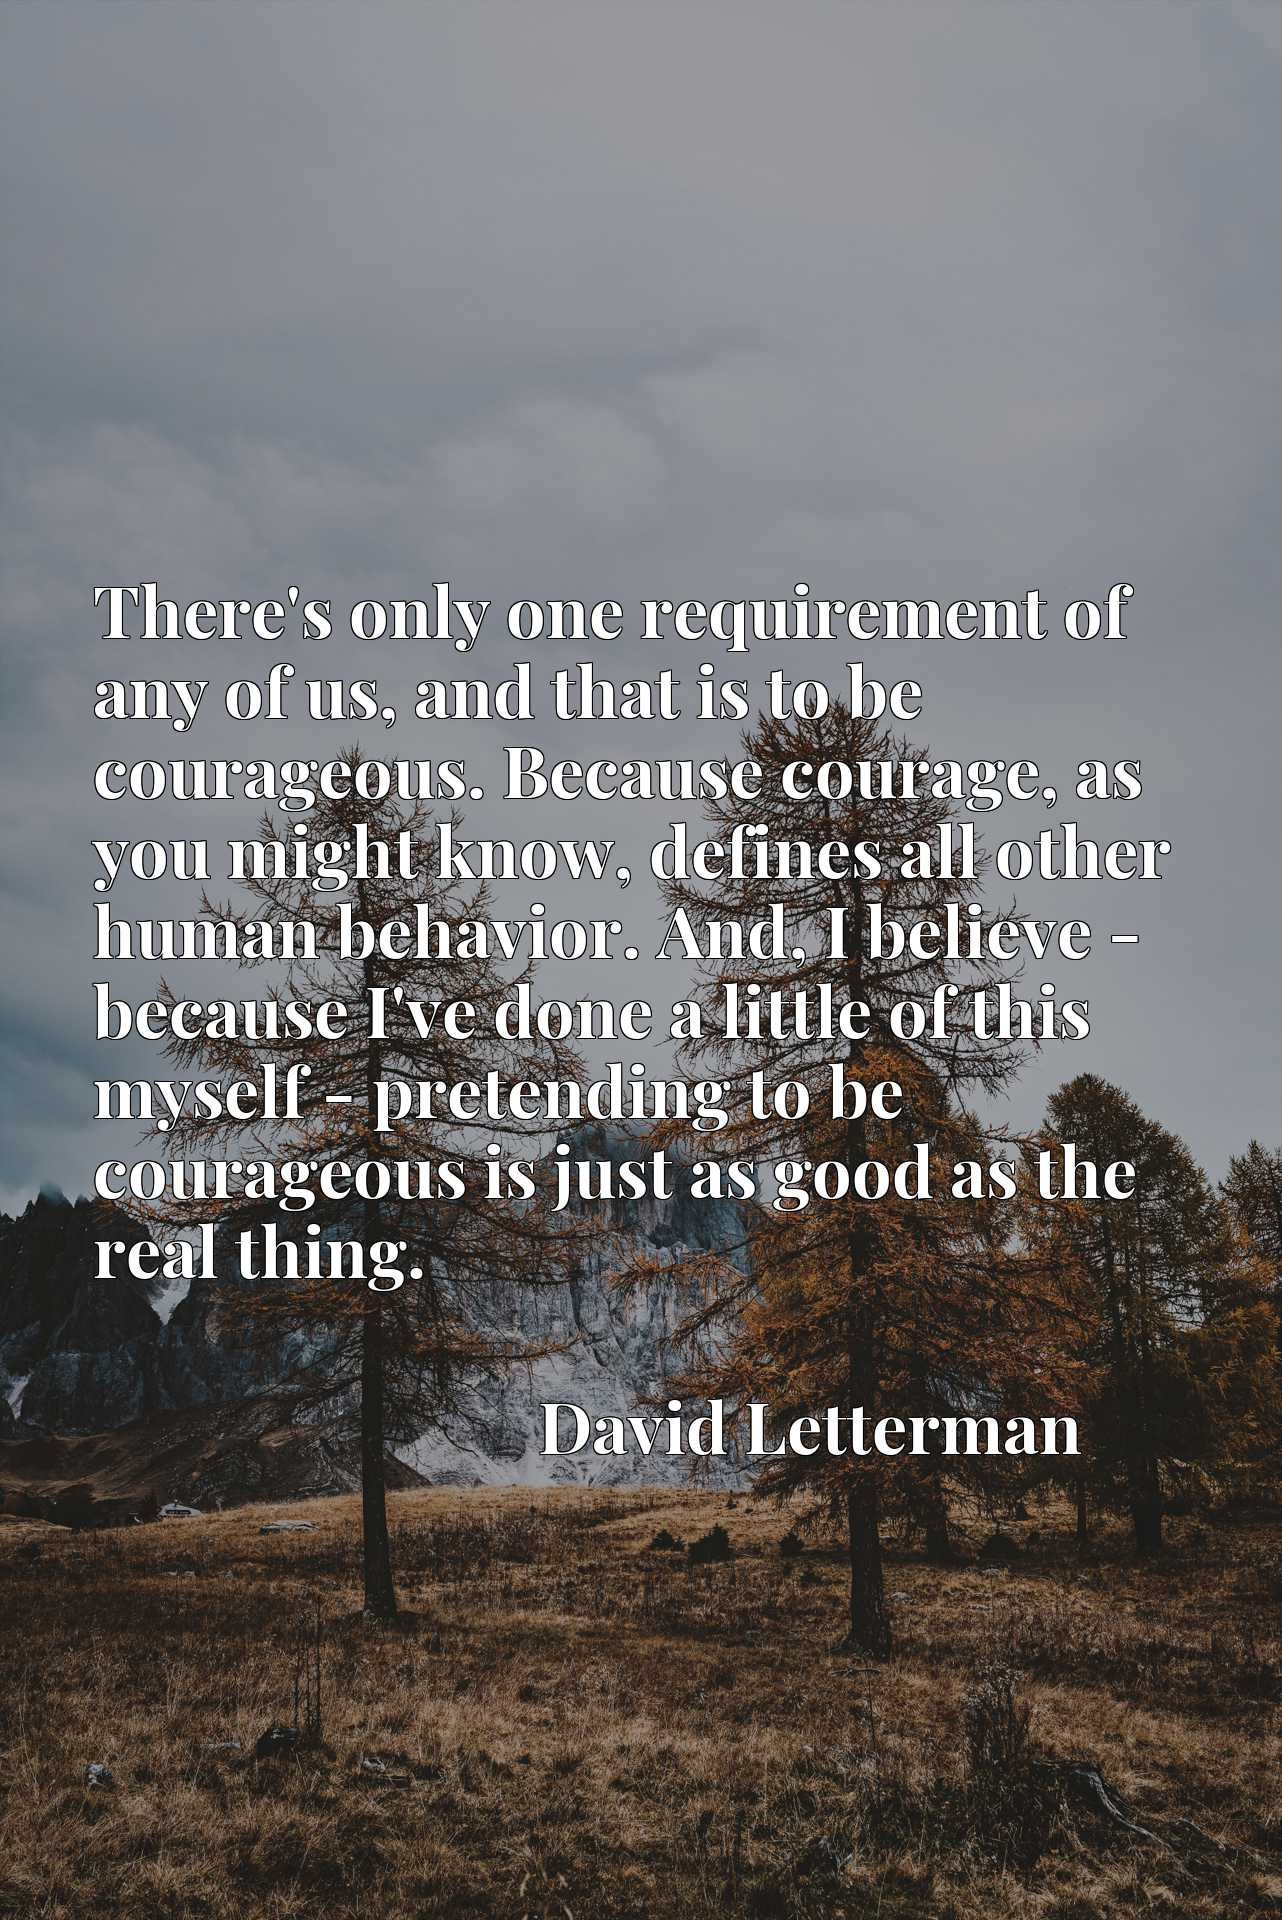 There's only one requirement of any of us, and that is to be courageous. Because courage, as you might know, defines all other human behavior. And, I believe - because I've done a little of this myself - pretending to be courageous is just as good as the real thing.